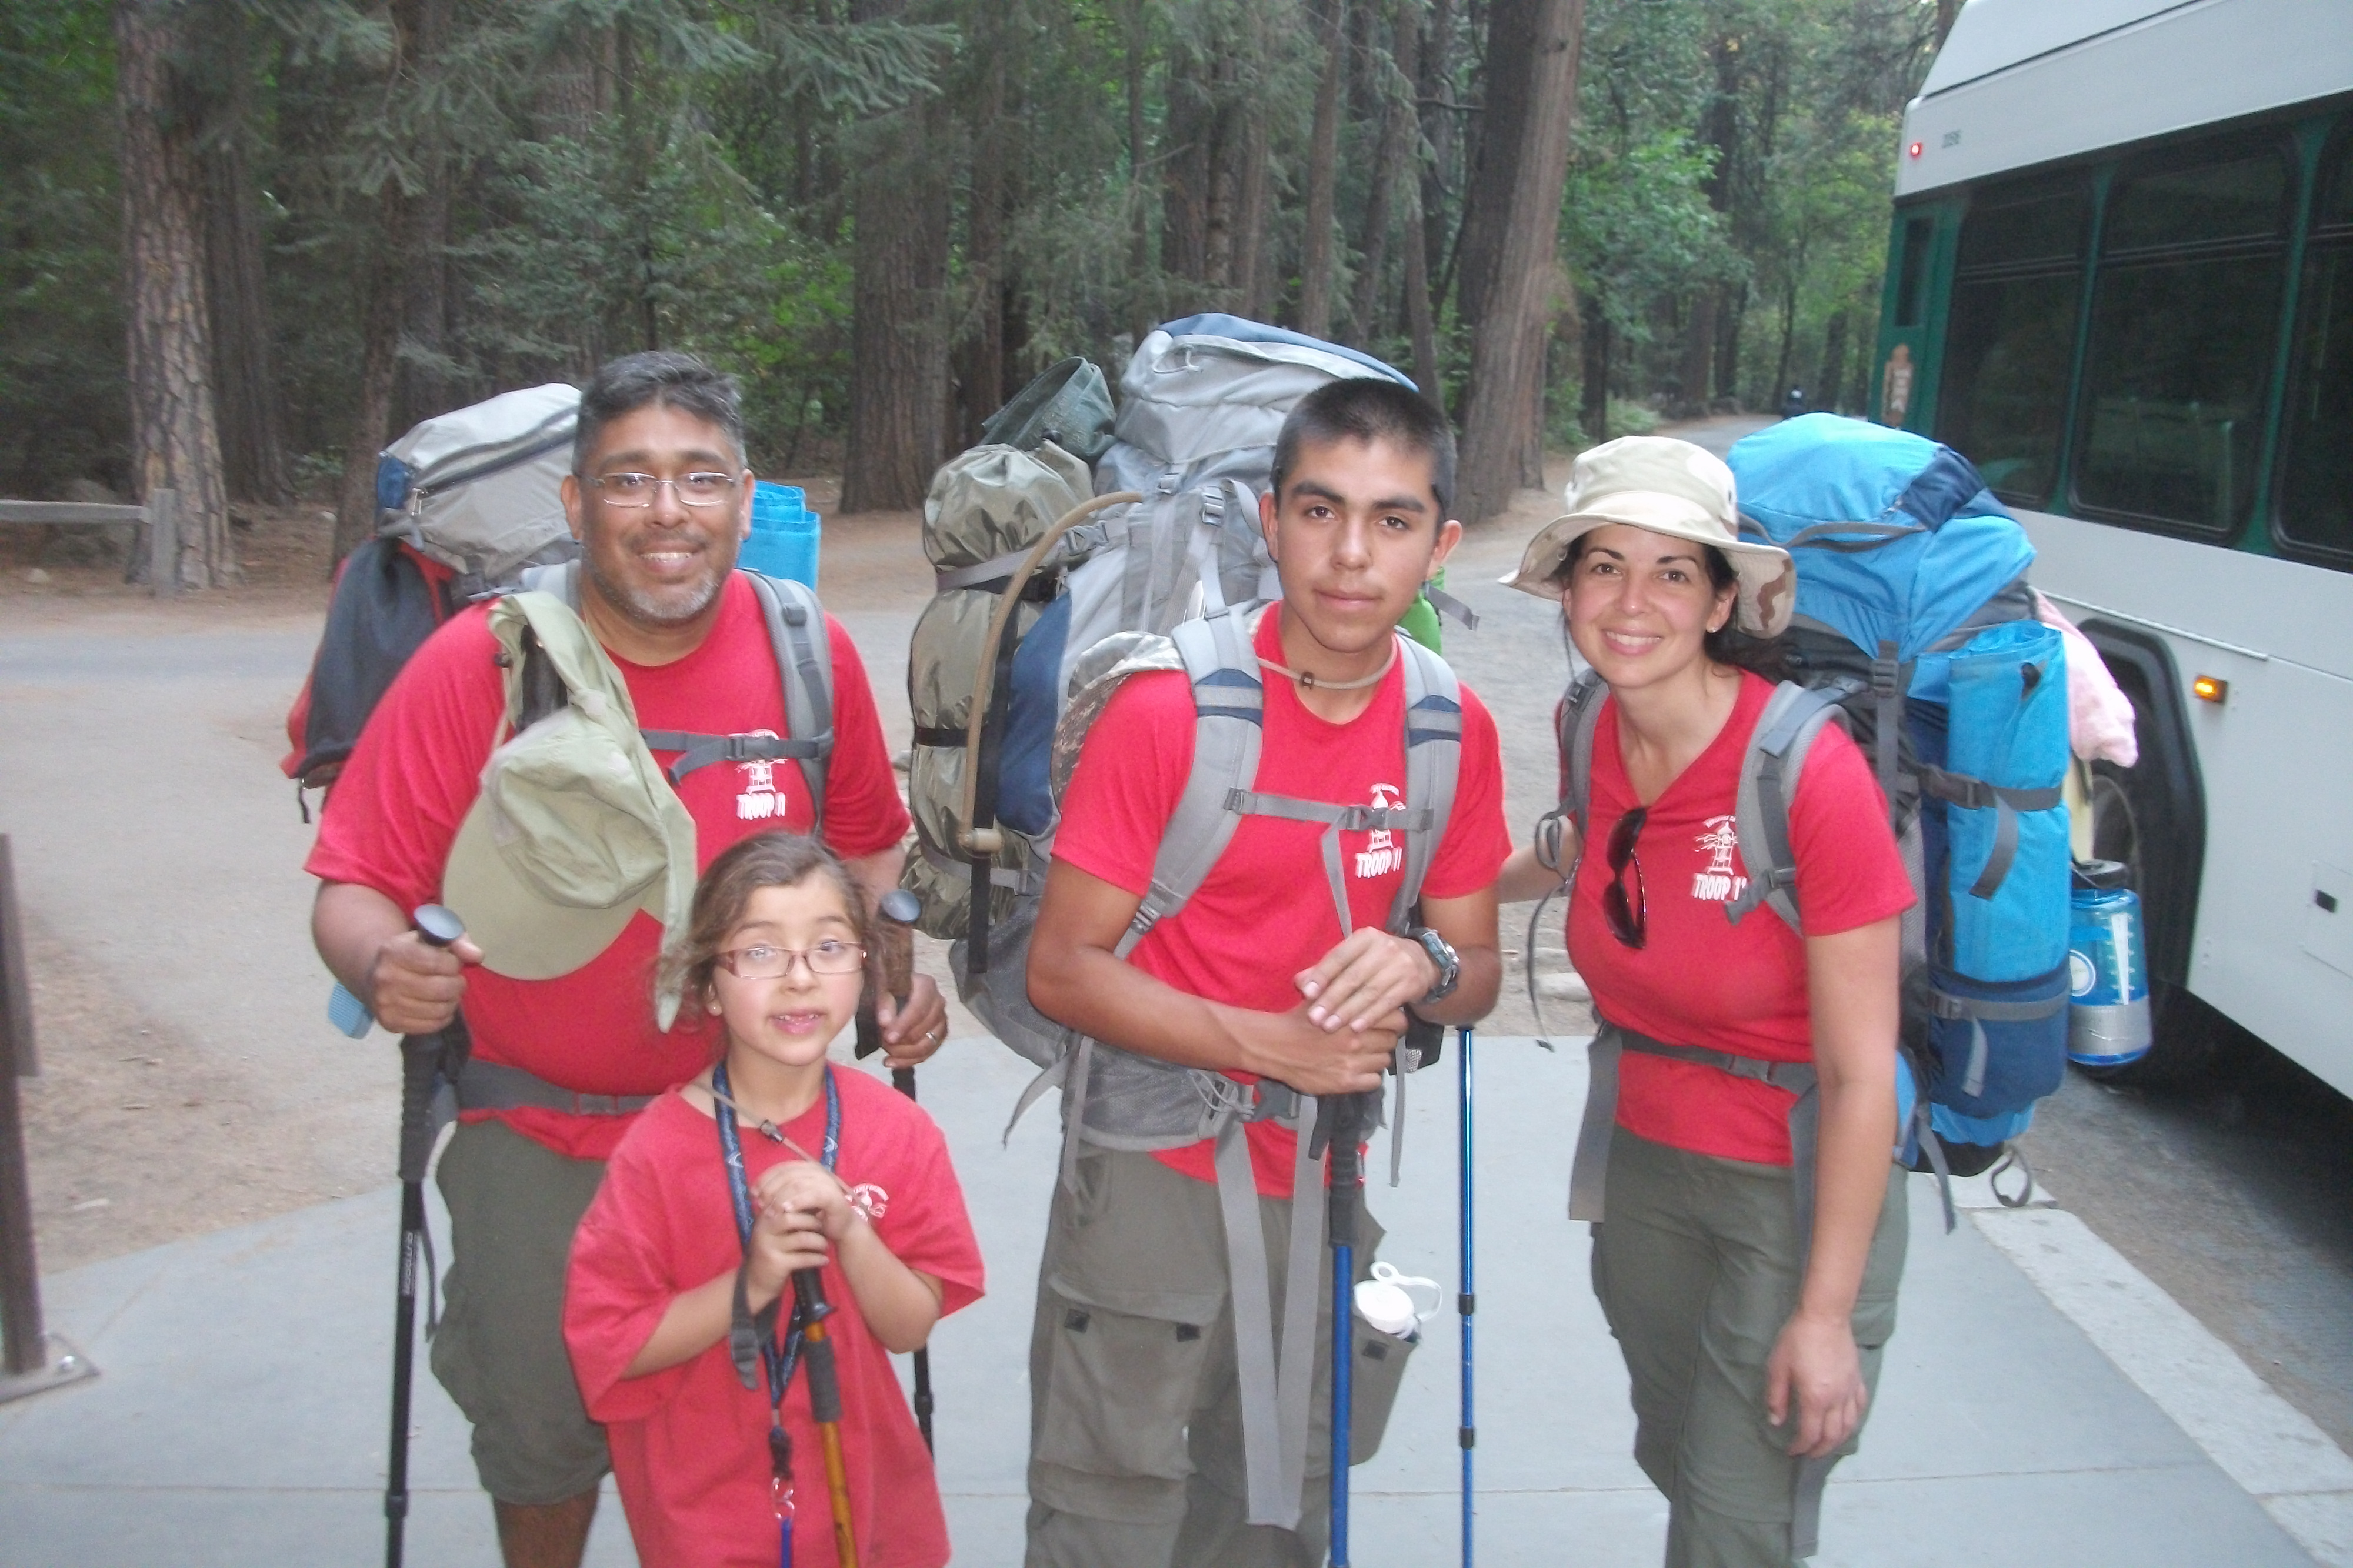 Finishing our 31 mile backpacking trip